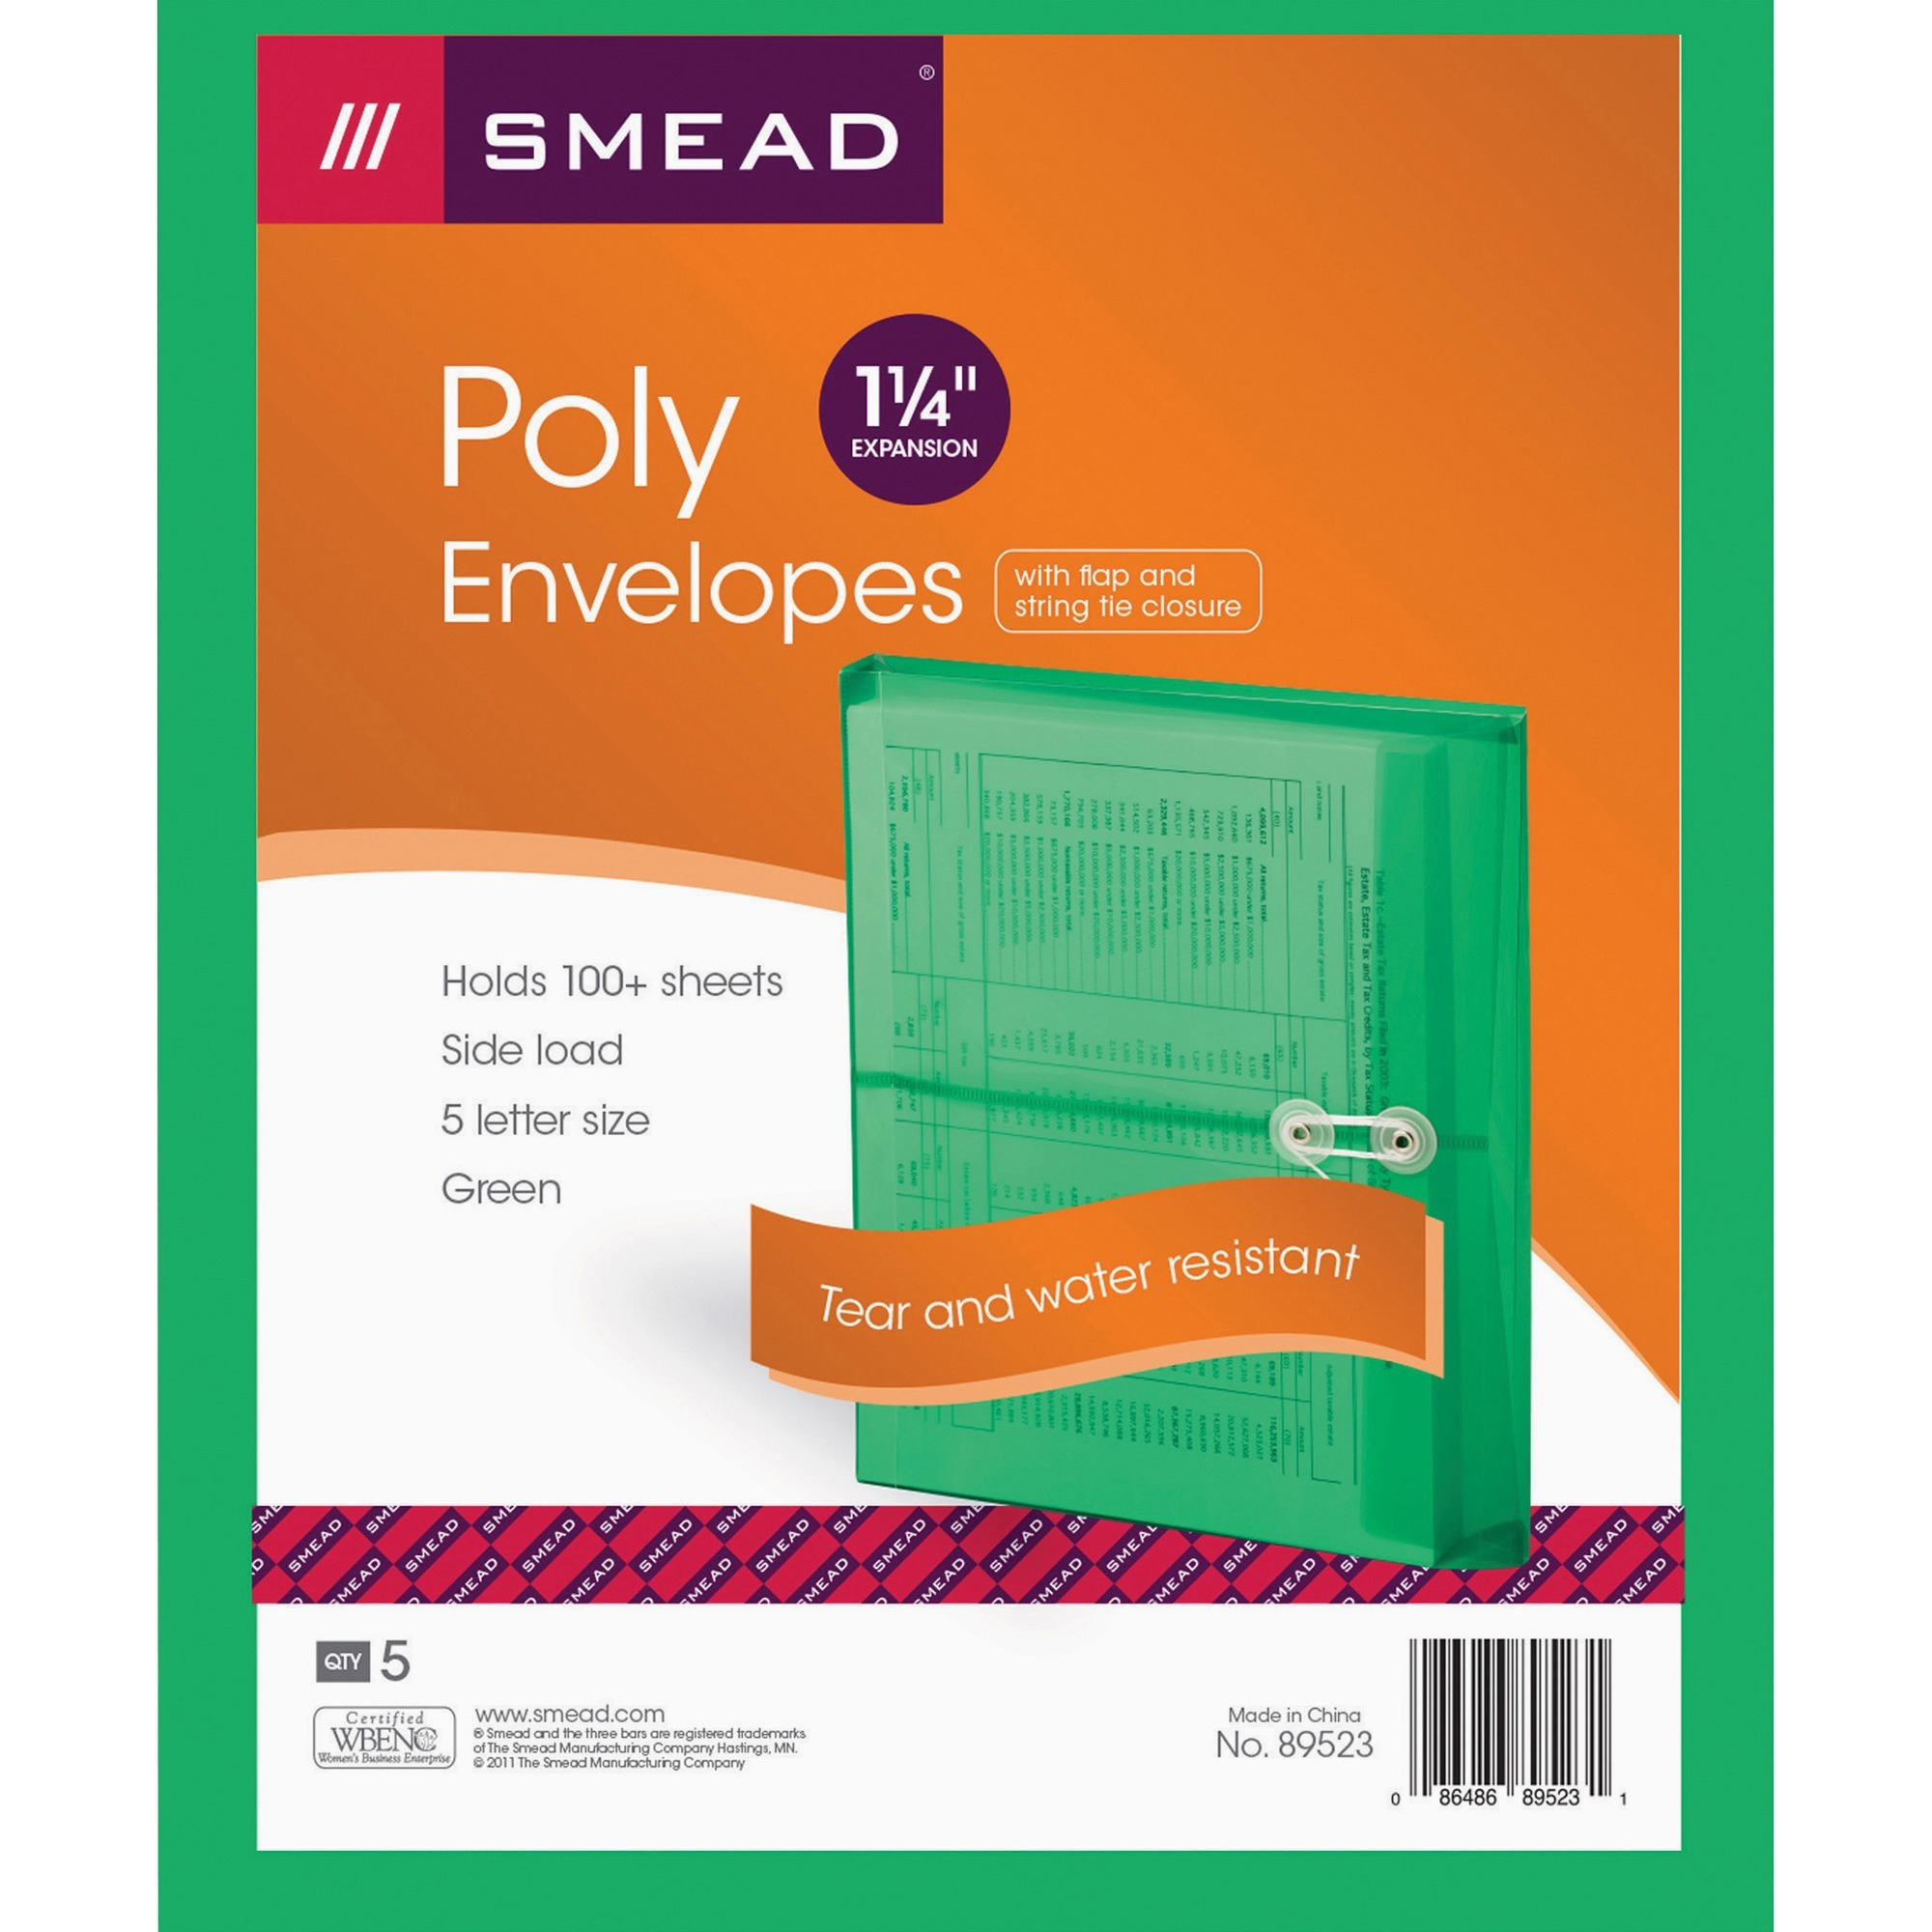 Smead, SMD89523, String Tie Closure Poly Envelopes, 5 / Pack, Green